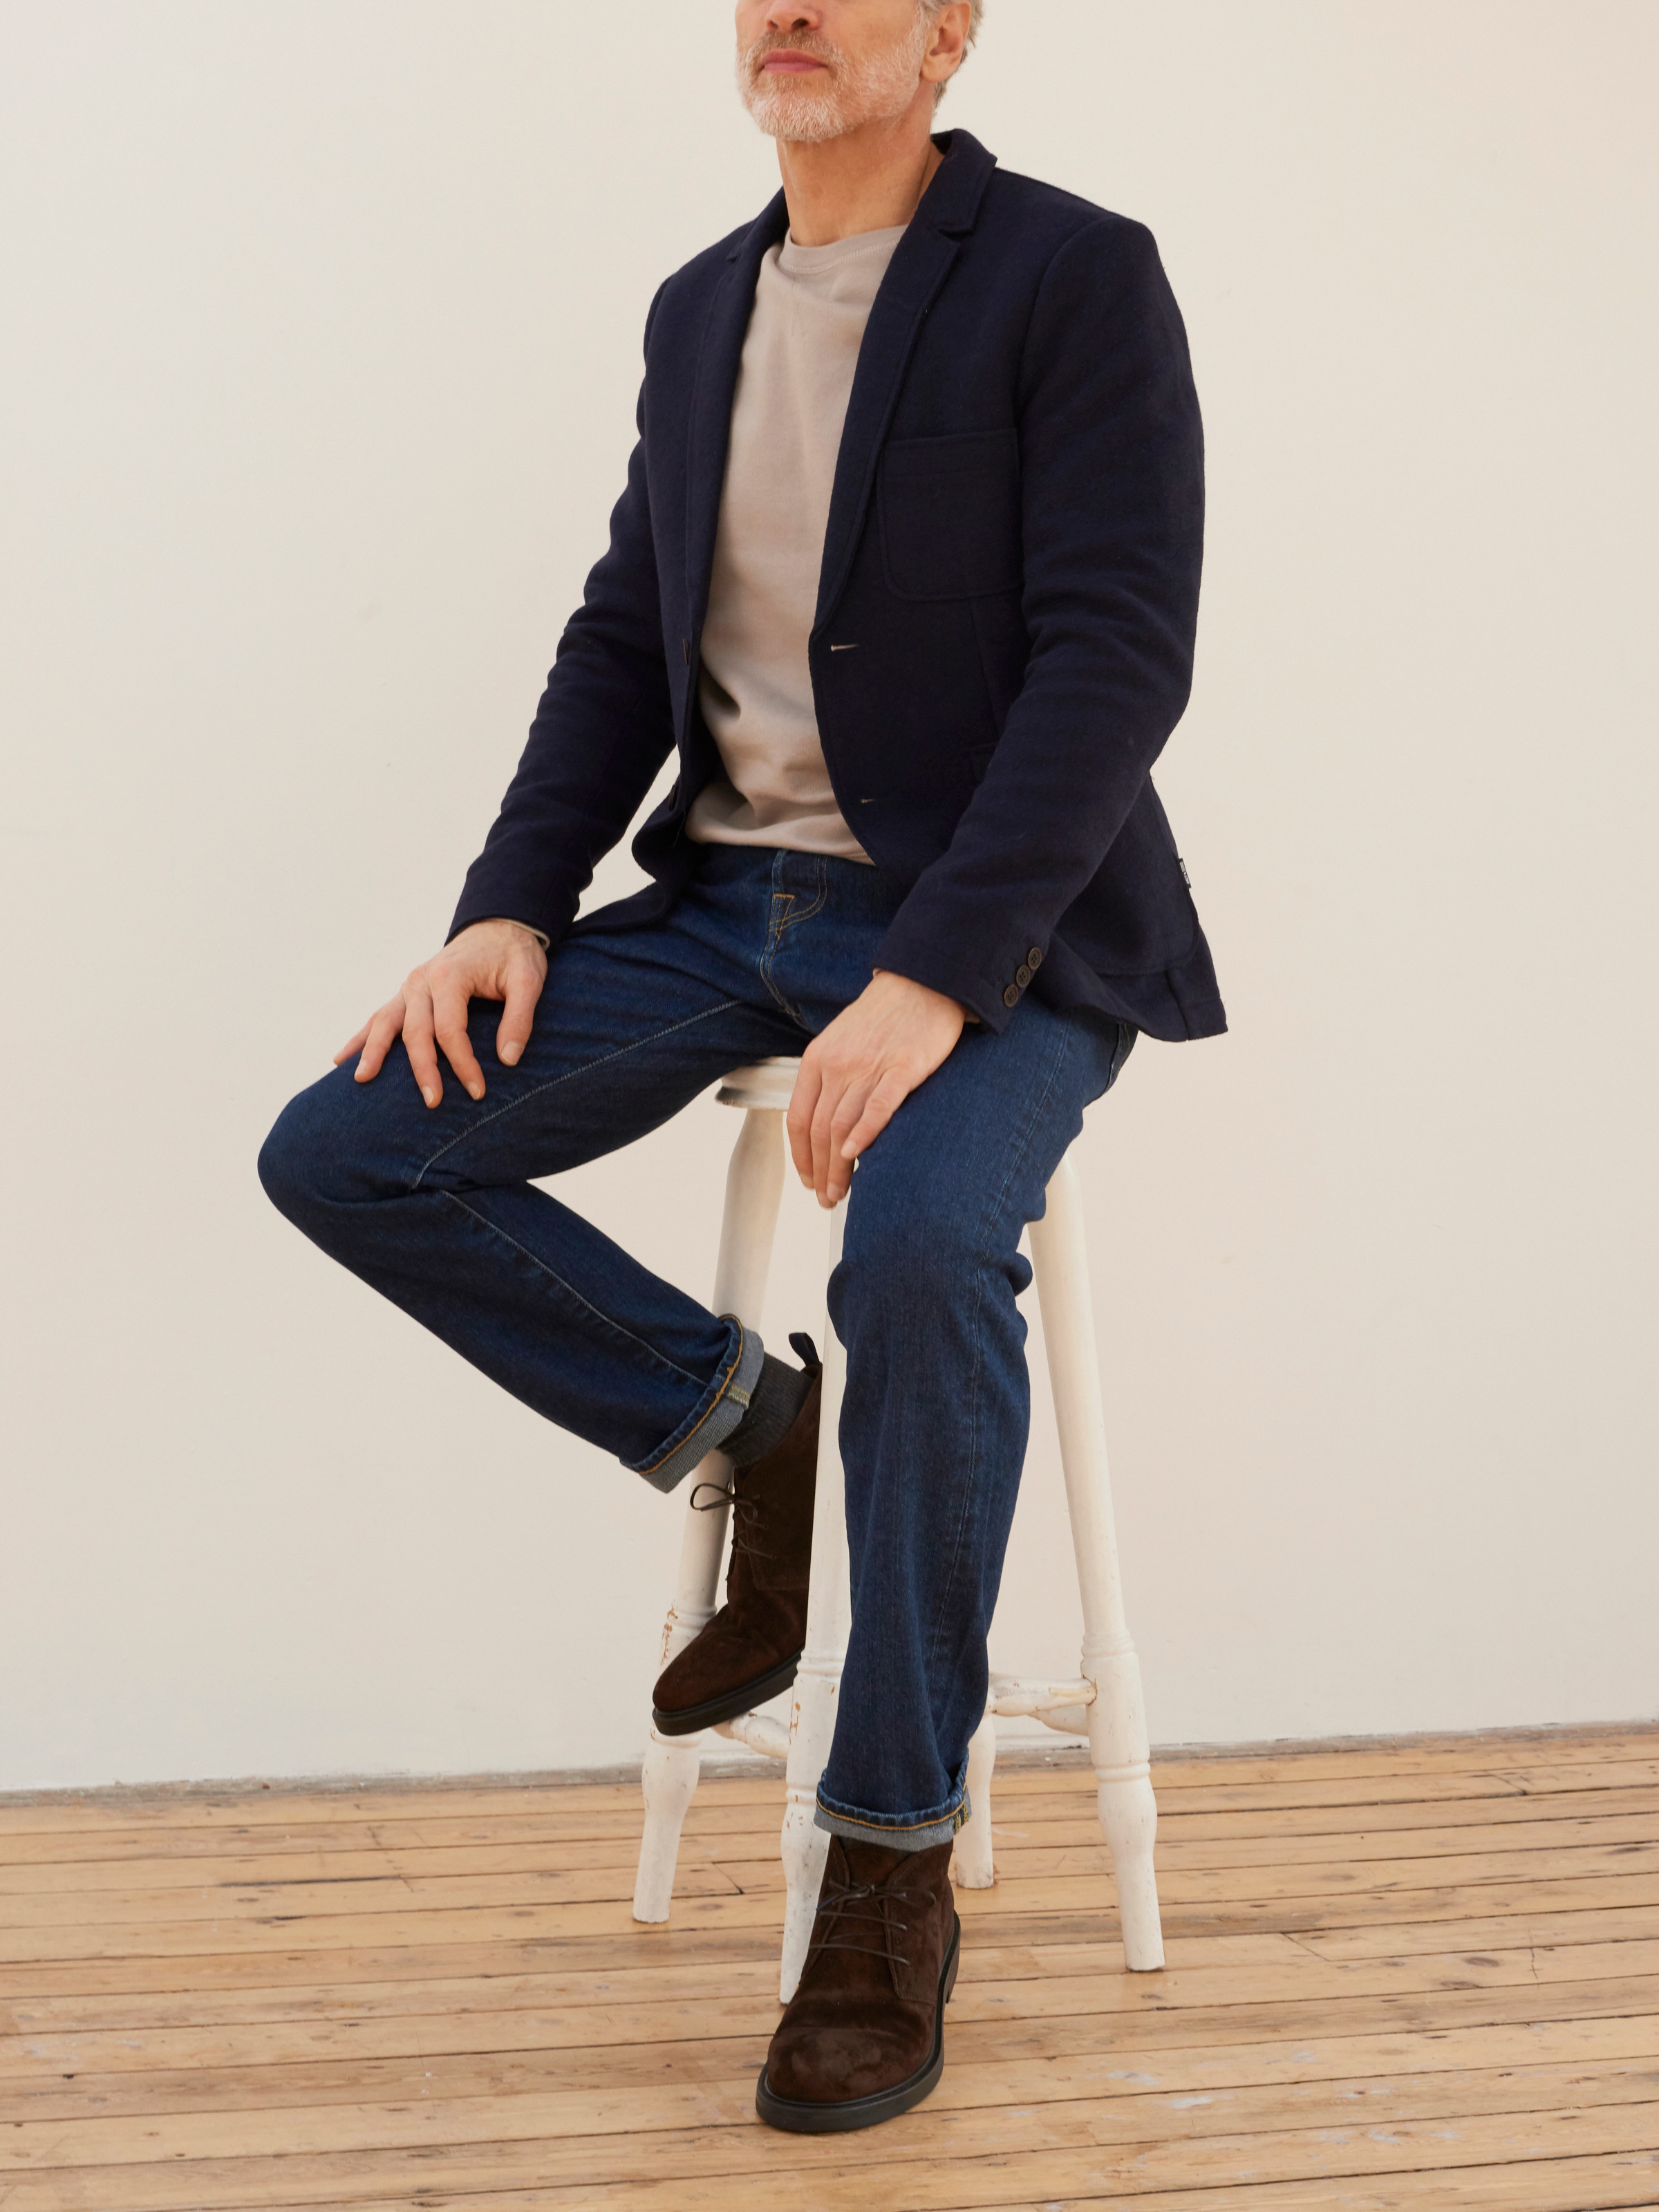 Men's outfit idea for 2021 with textured blazer, bold coloured sweatshirt, dark blue jeans, brown desert boots. Suitable for spring and autumn.